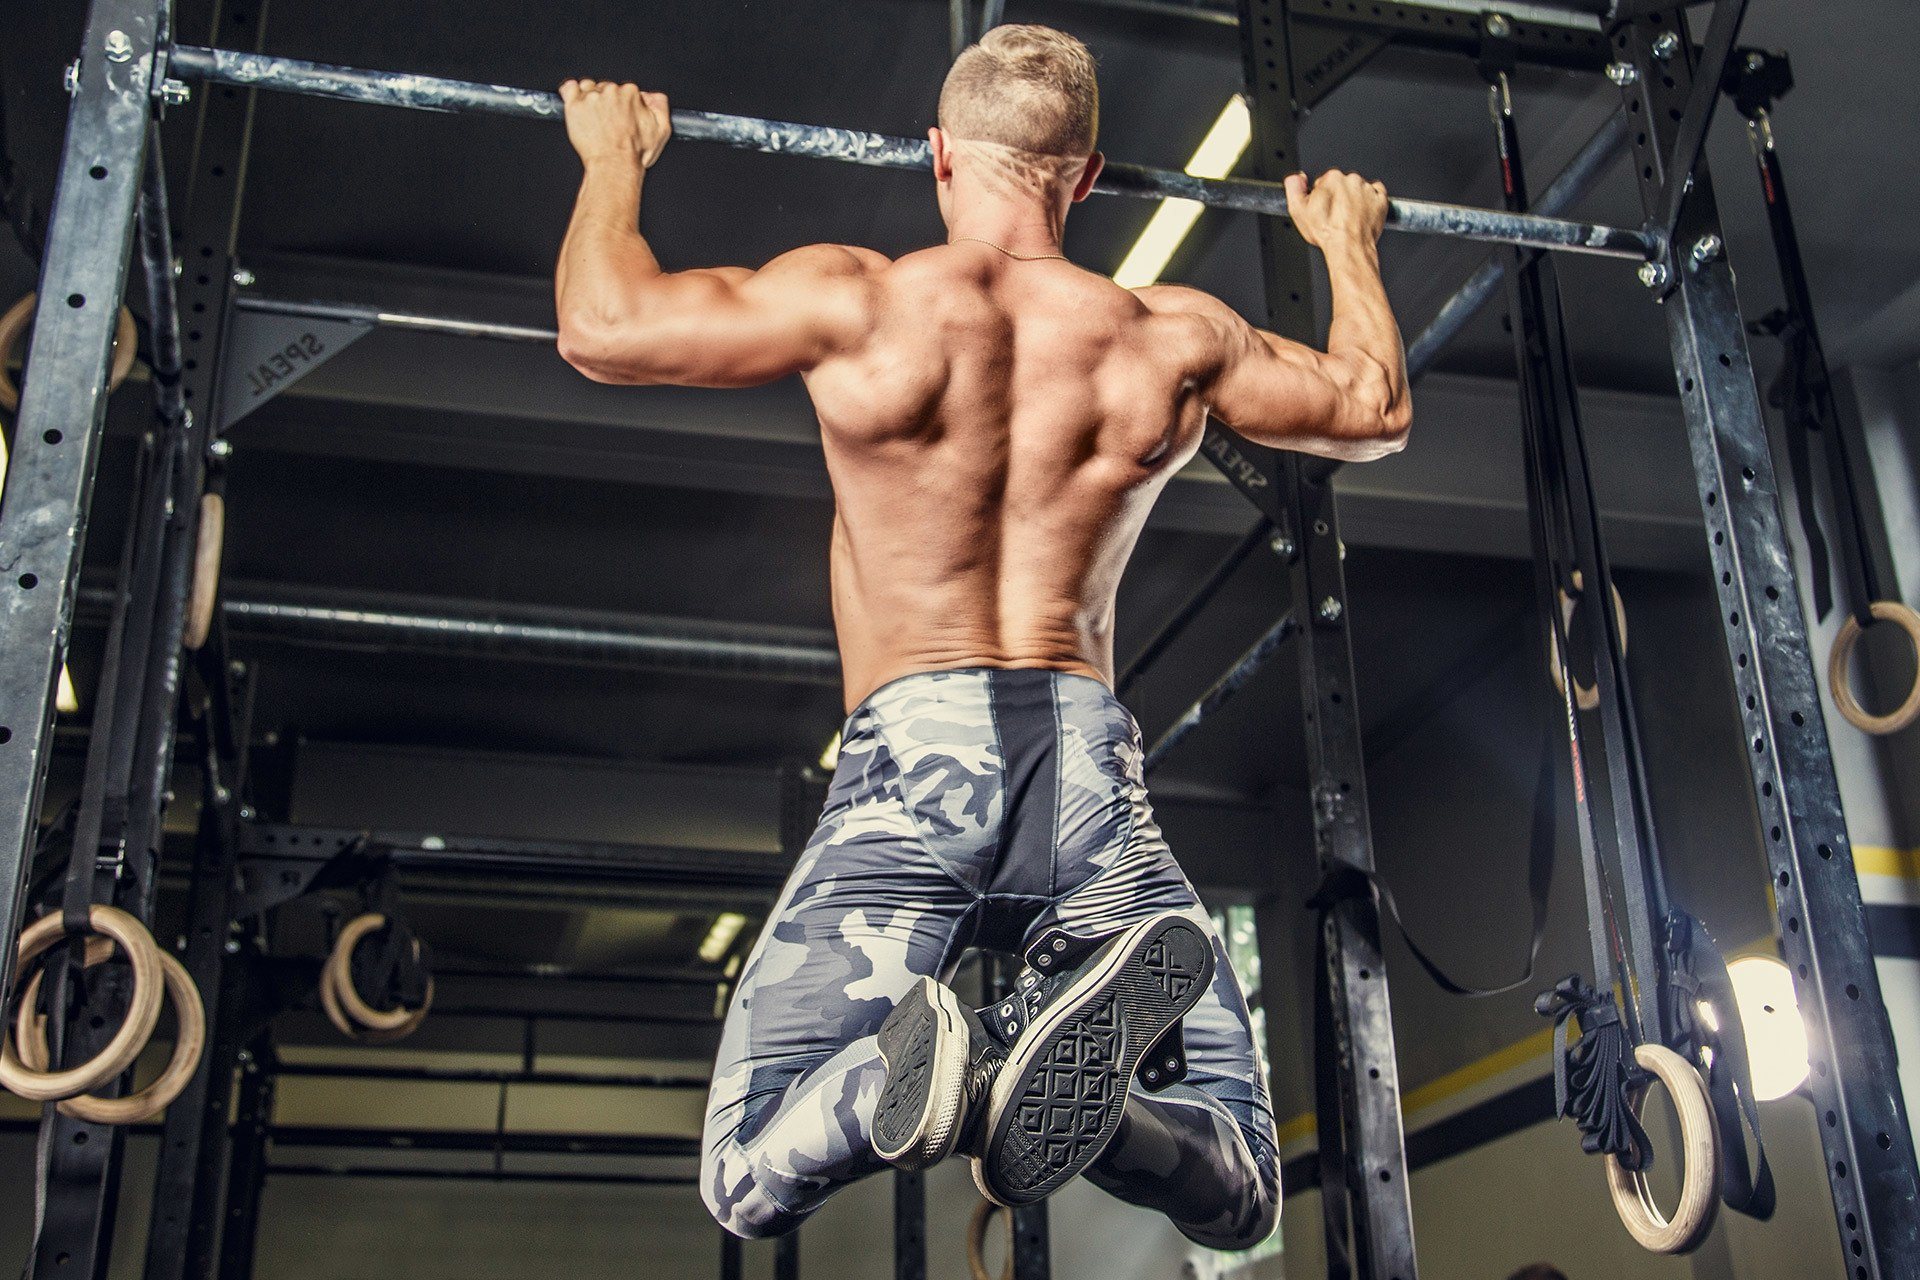 Athlete doing wide grip pull-ups